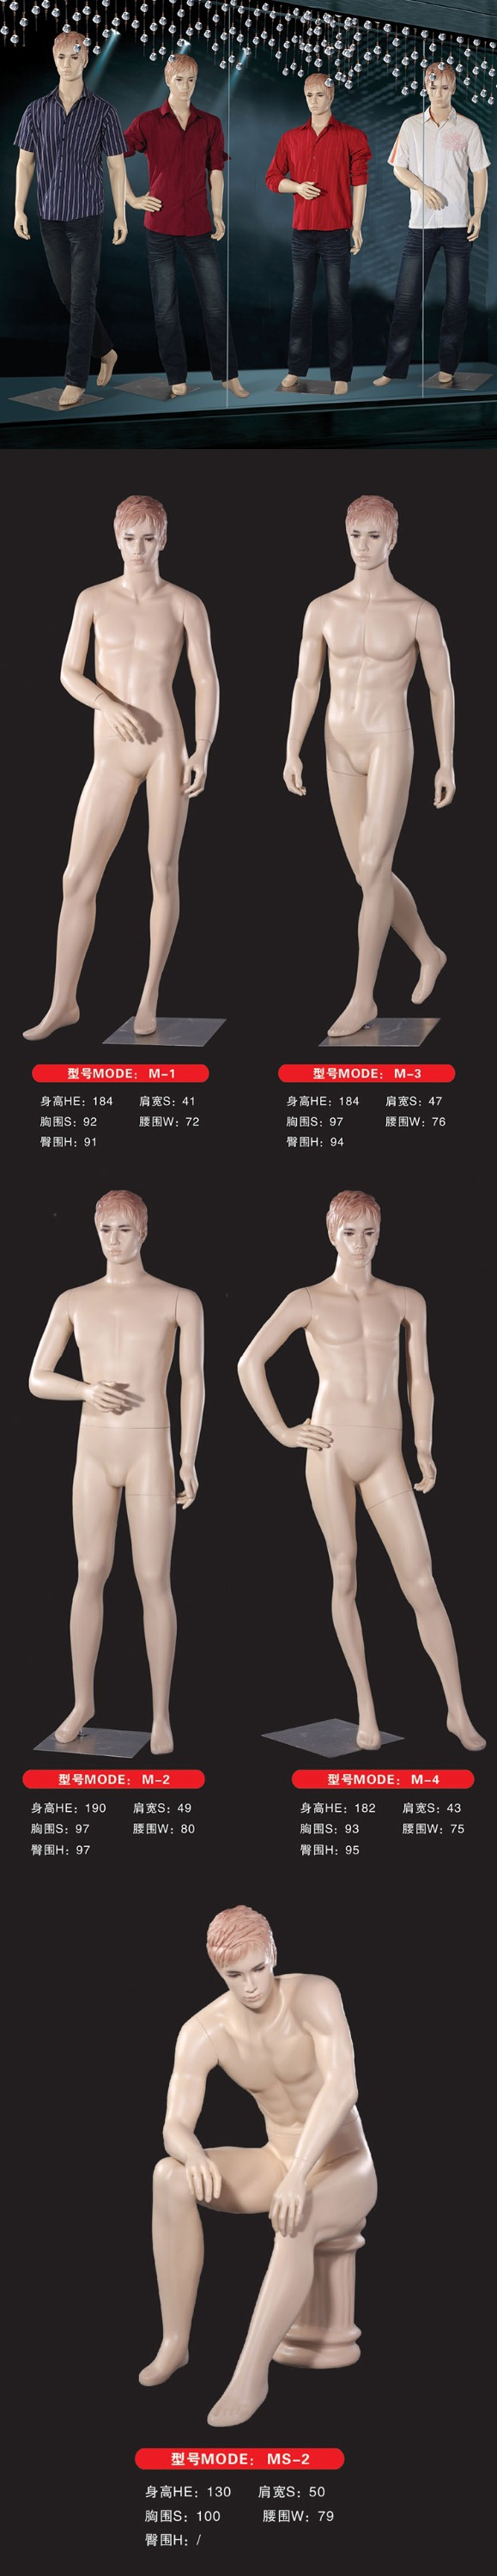 Wholesale Full Body Handsome Fiberglass Man Size Male Mannequin